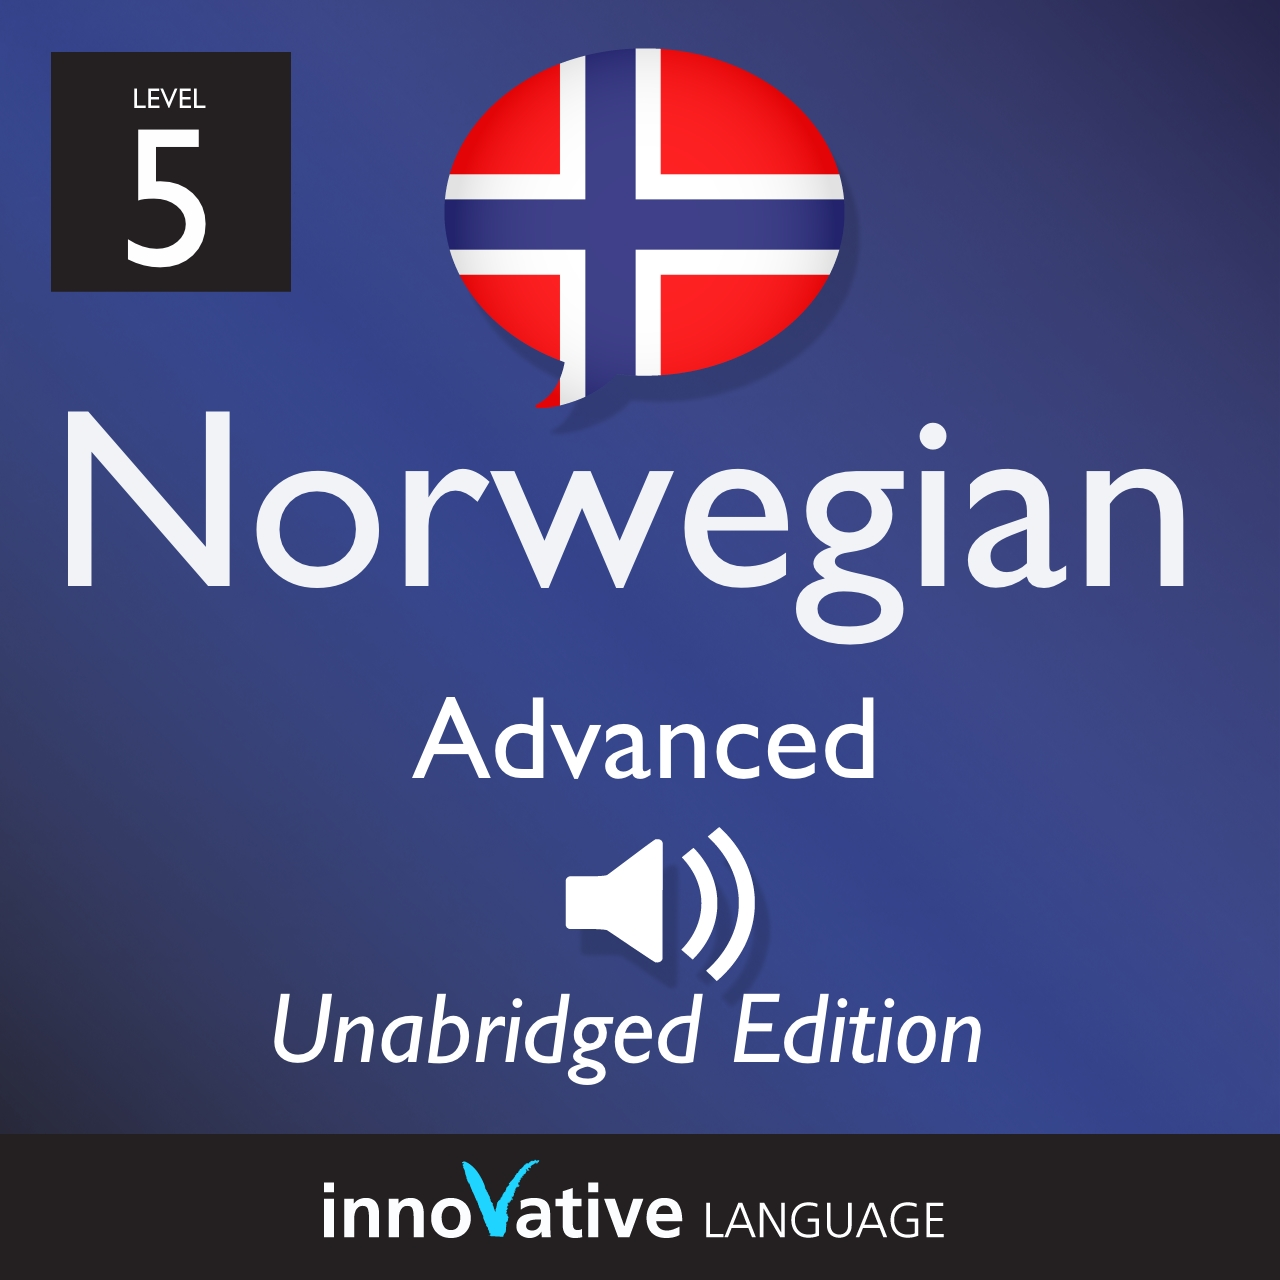 Audiobook Norwegian - Level 5: Advanced Norwegian, Volume 1